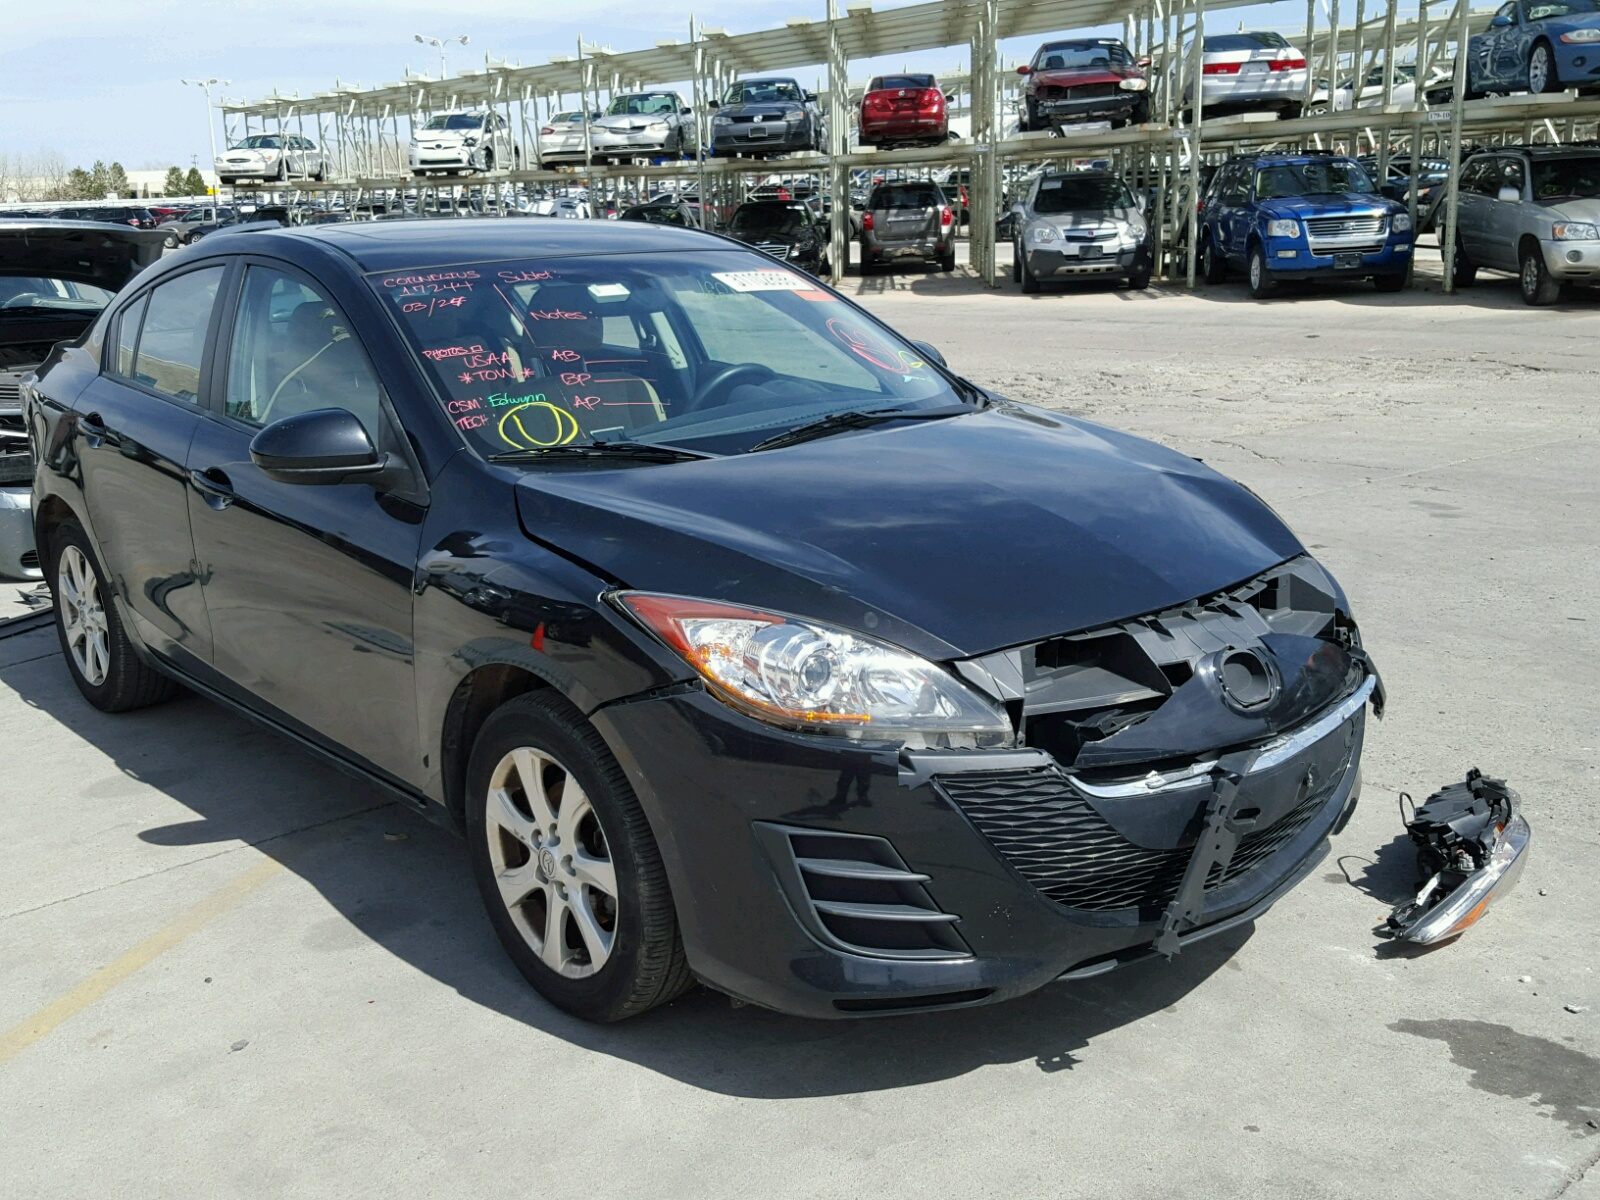 Auto Auction Ended On Vin 4f4cr12a8ttm49953 1996 Mazda B2300 In Tn Knoxville